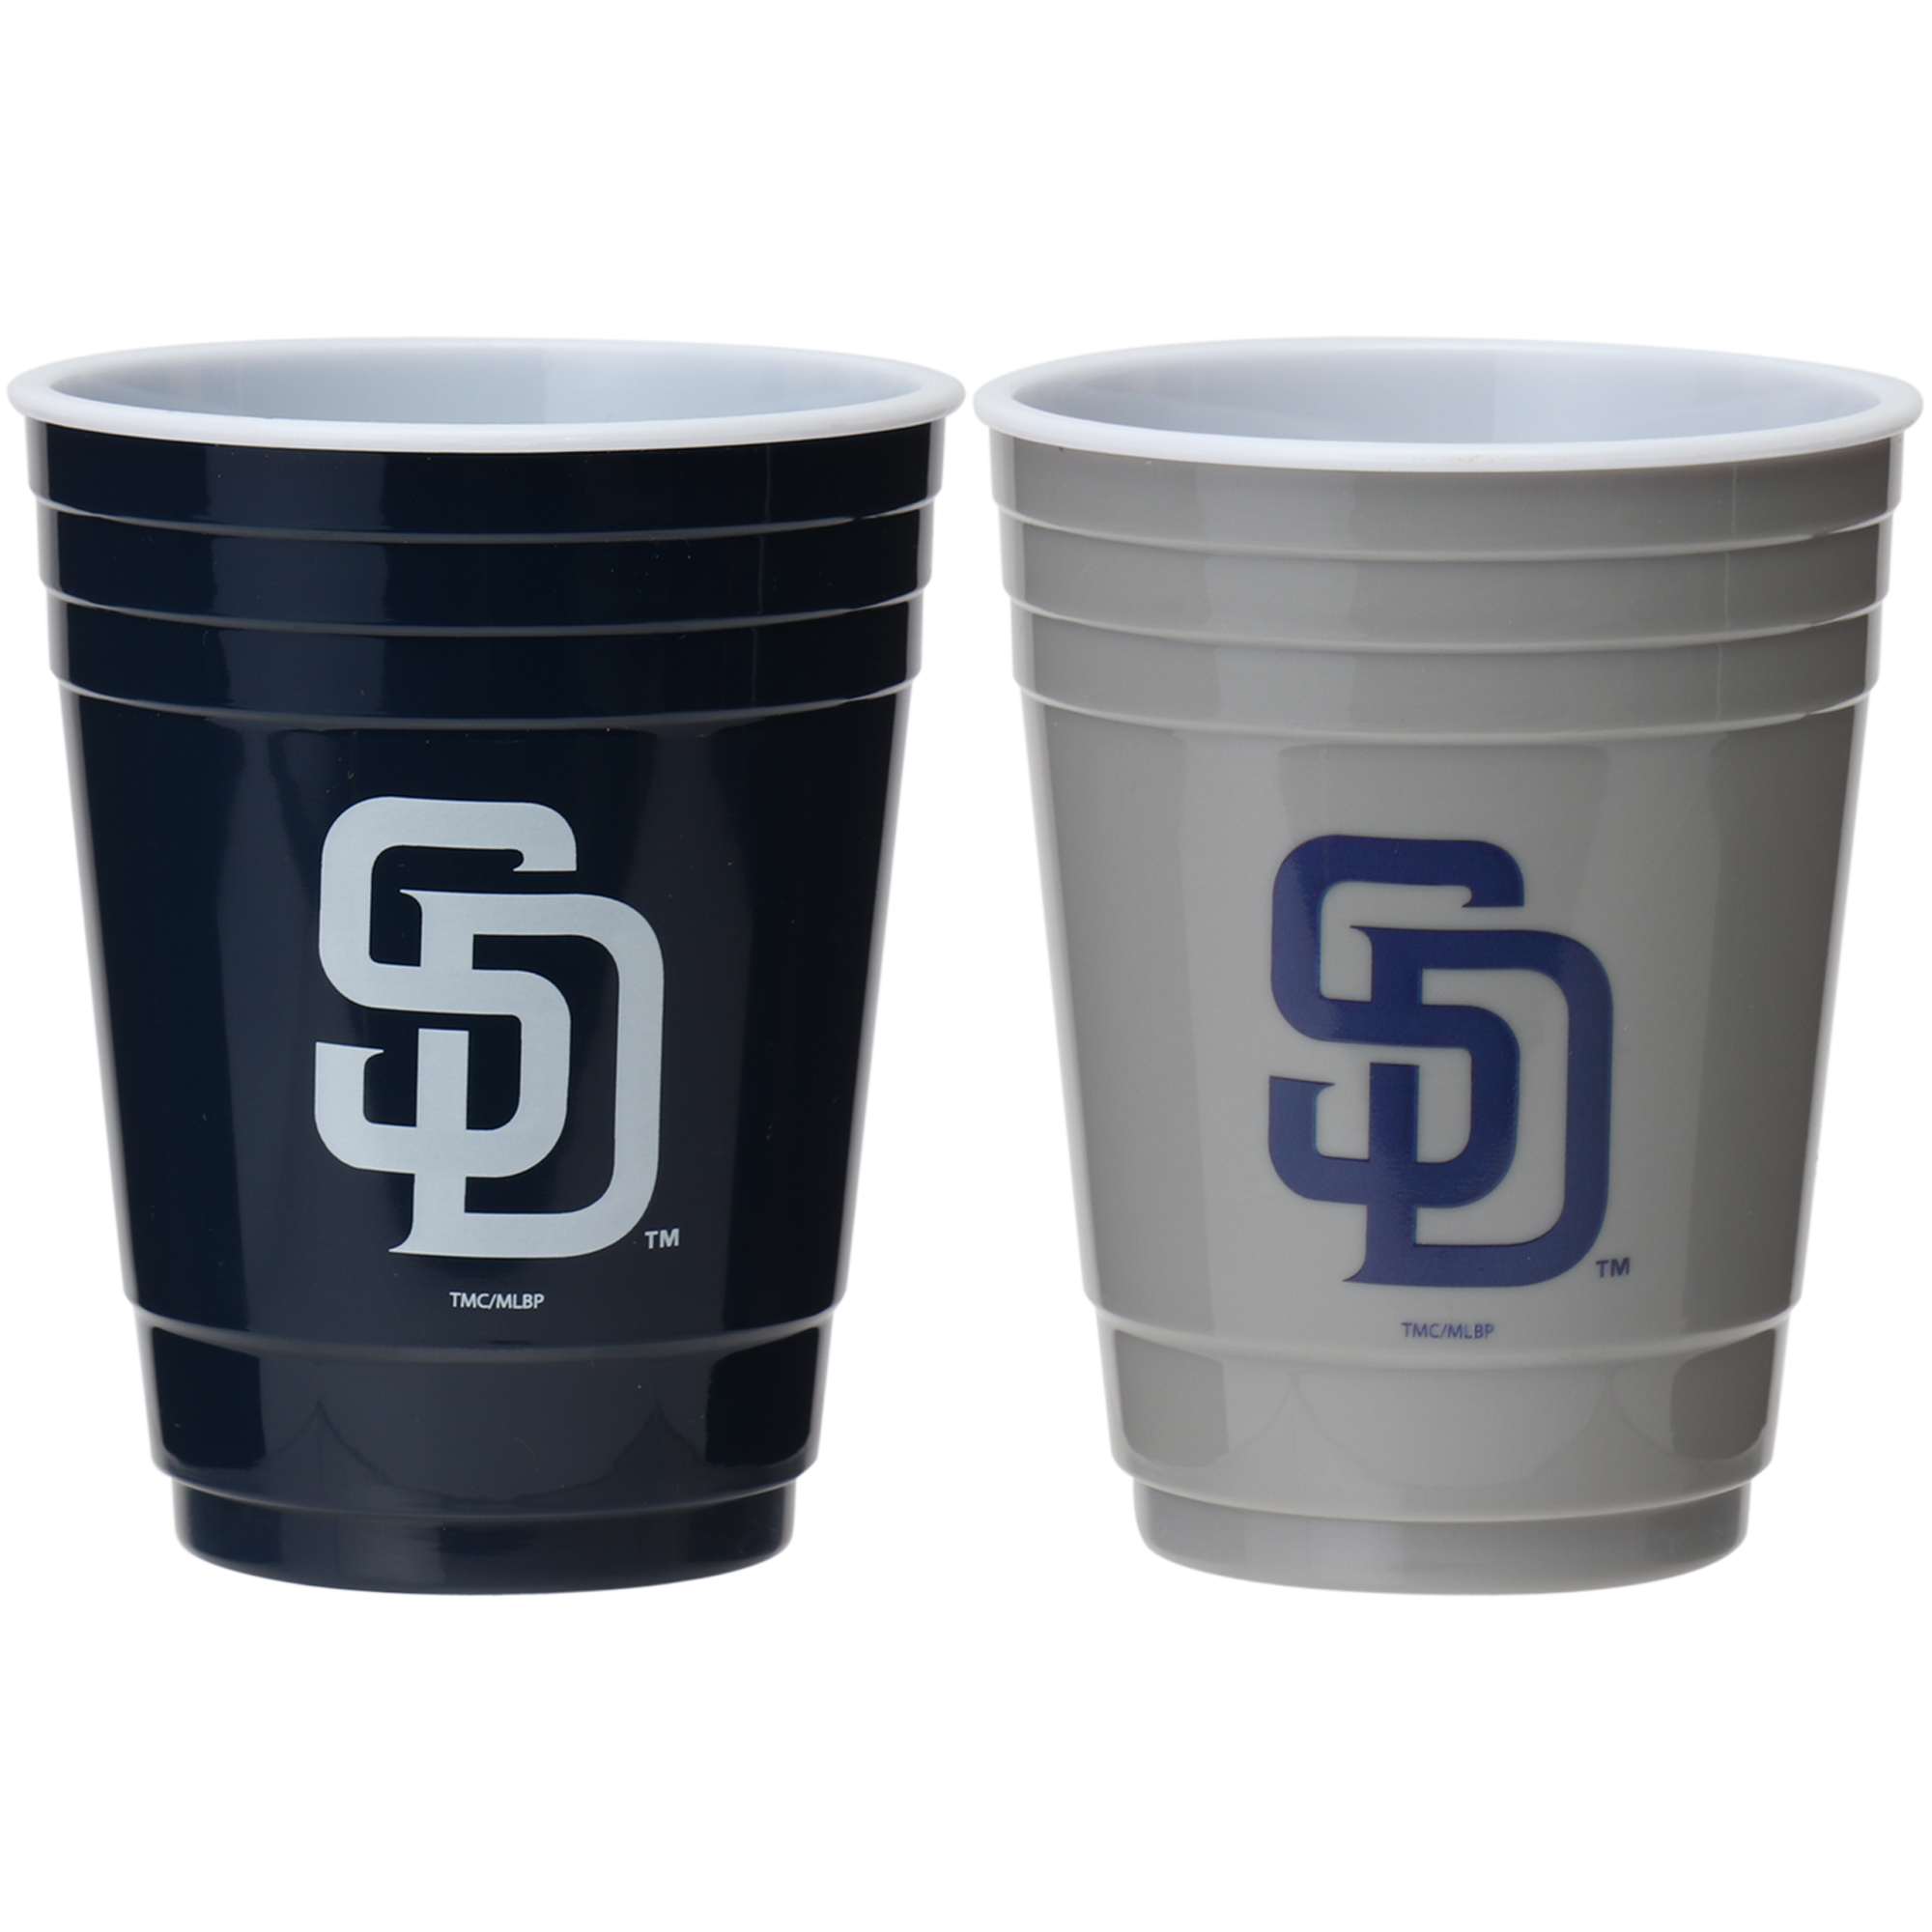 San Diego Padres Two-Pack Home And Away Plastic Cup - No Size